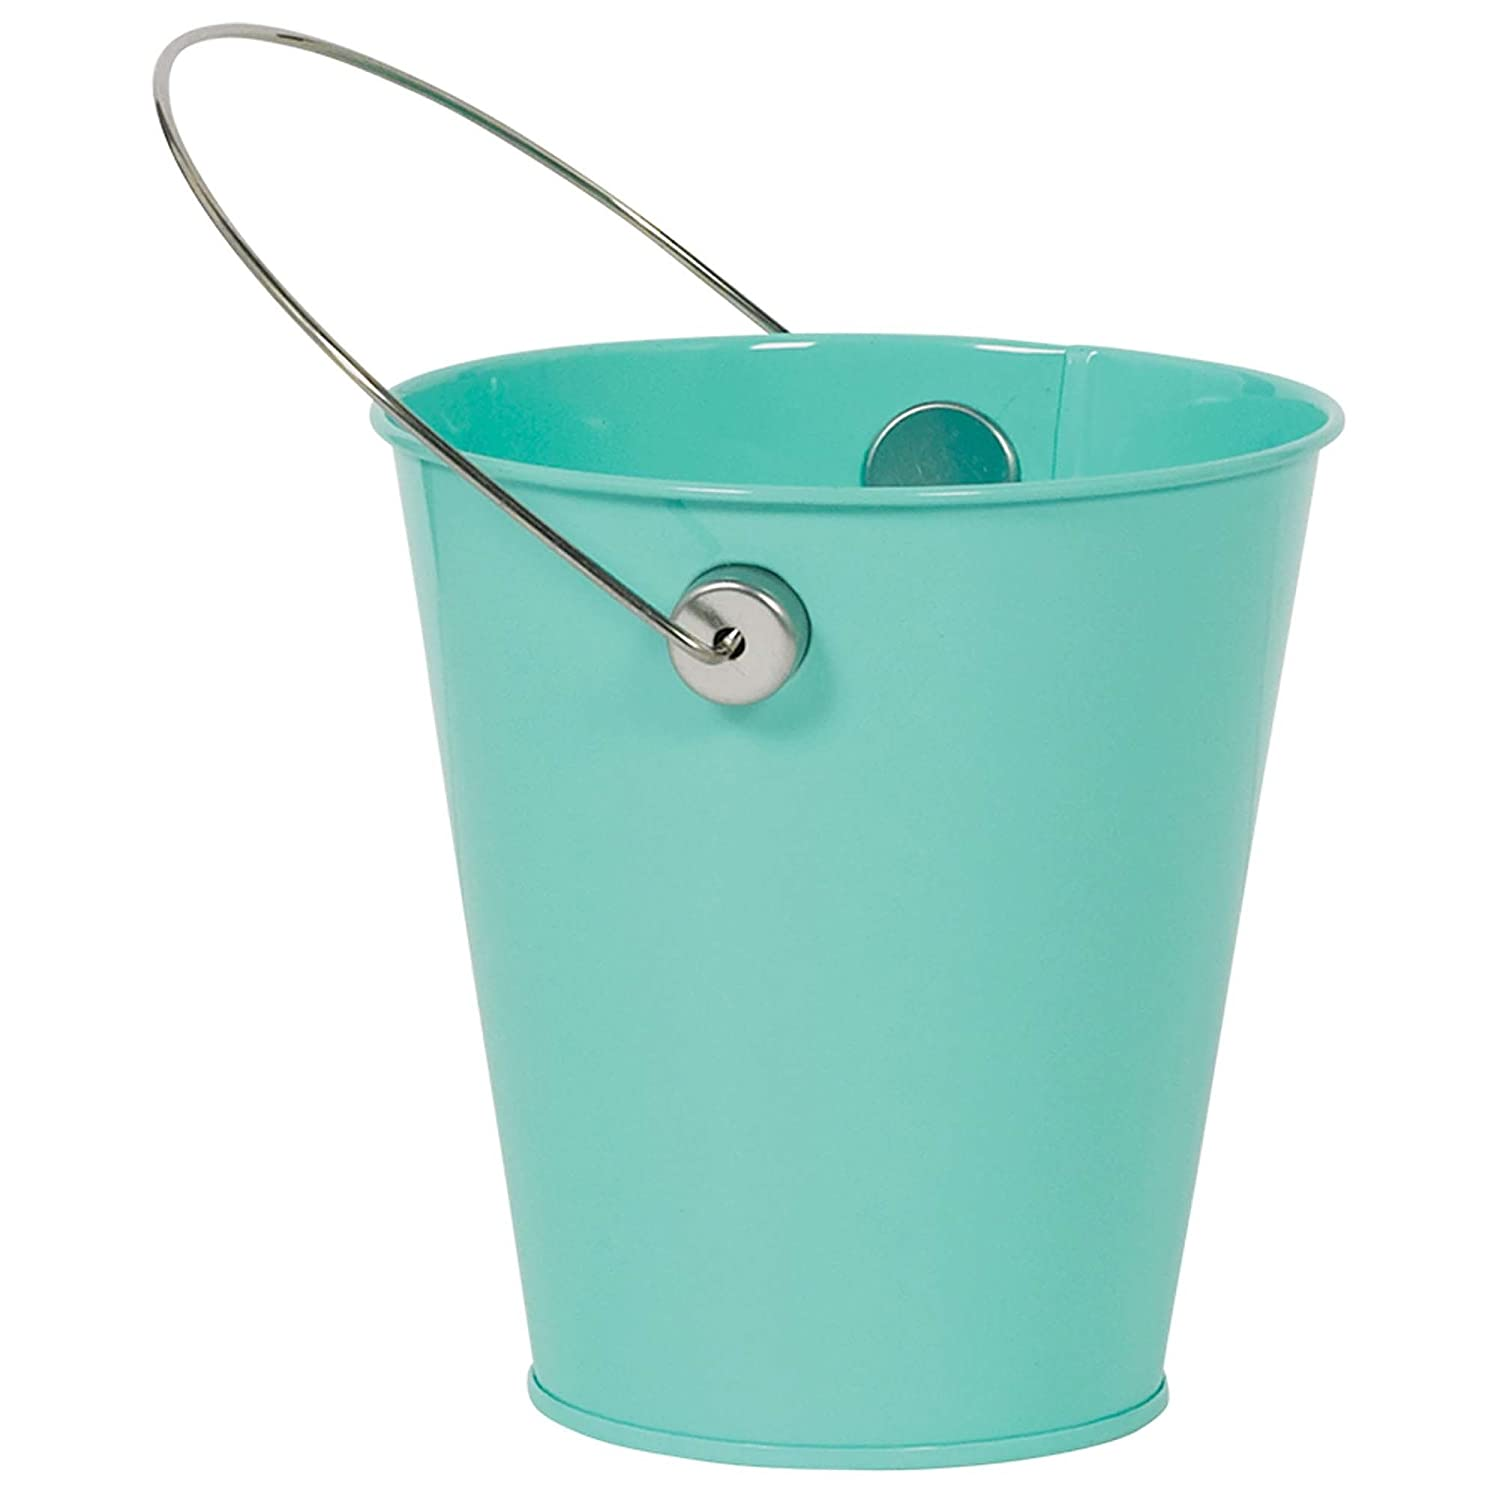 Amscan 432589.54 Blue Caribbean Decorative Metal Mini Bucket with Handle Childrens Costume Accessories 4 1//2,